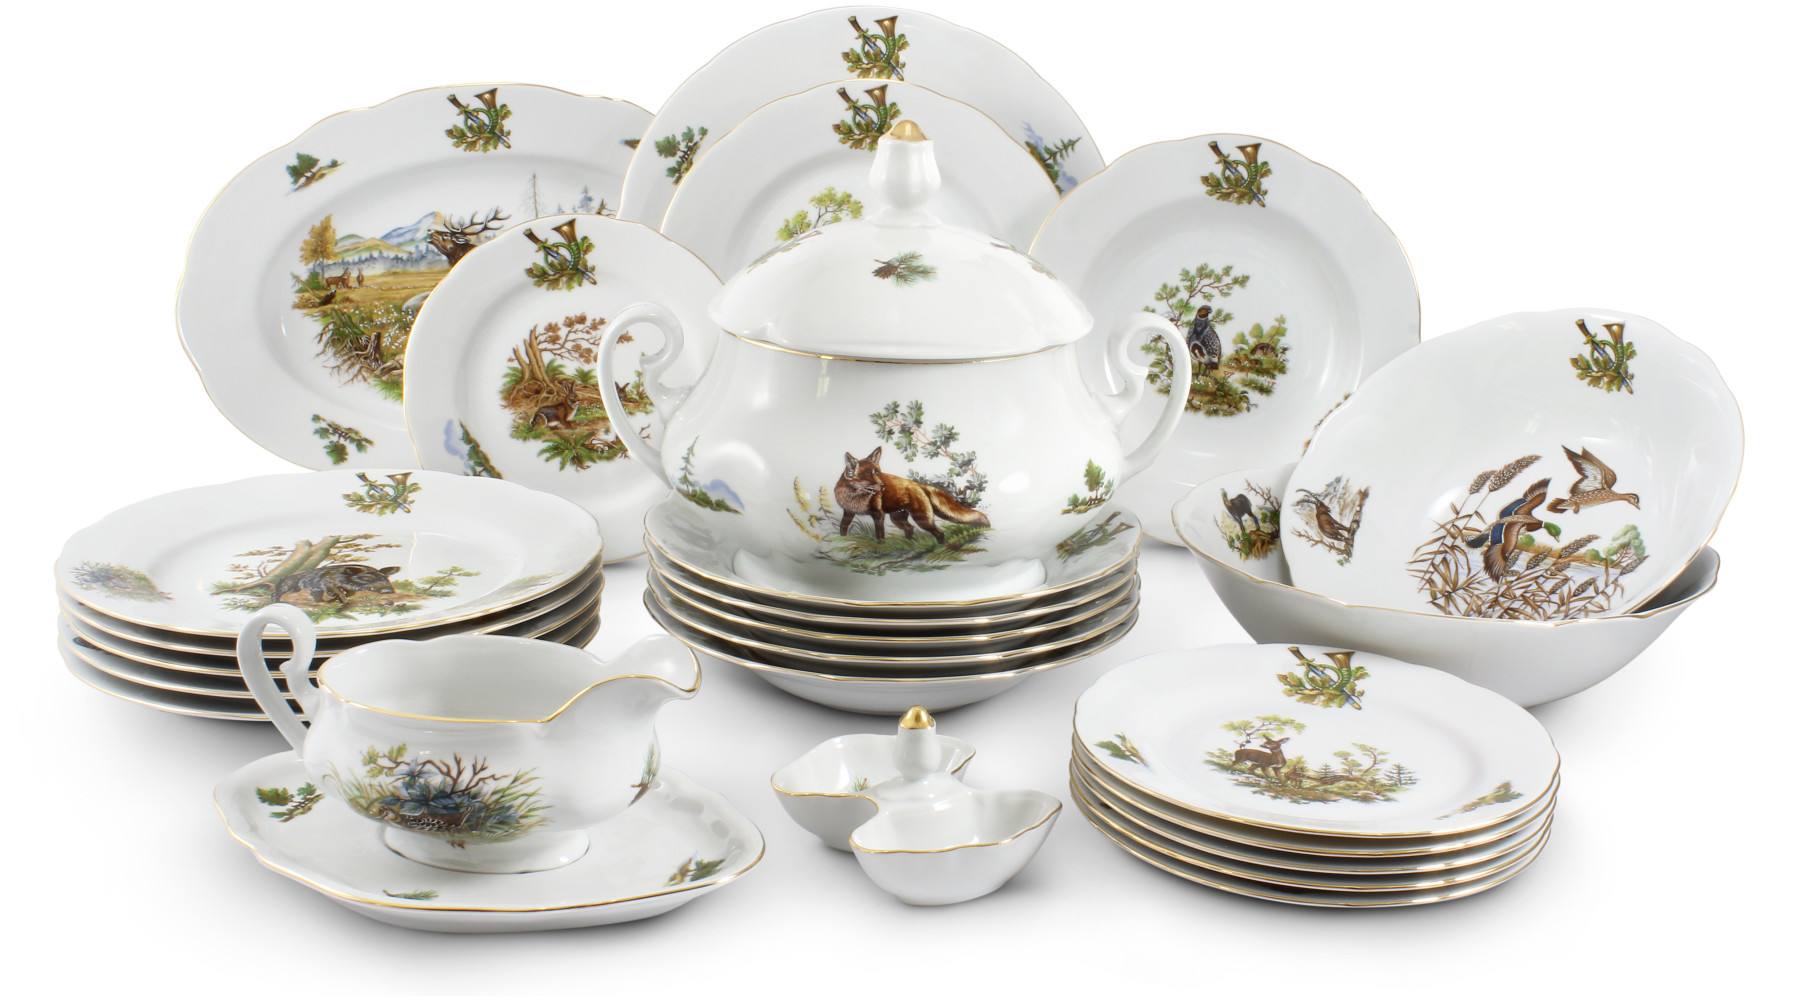 Dinner set 25-piece - Hunting motives